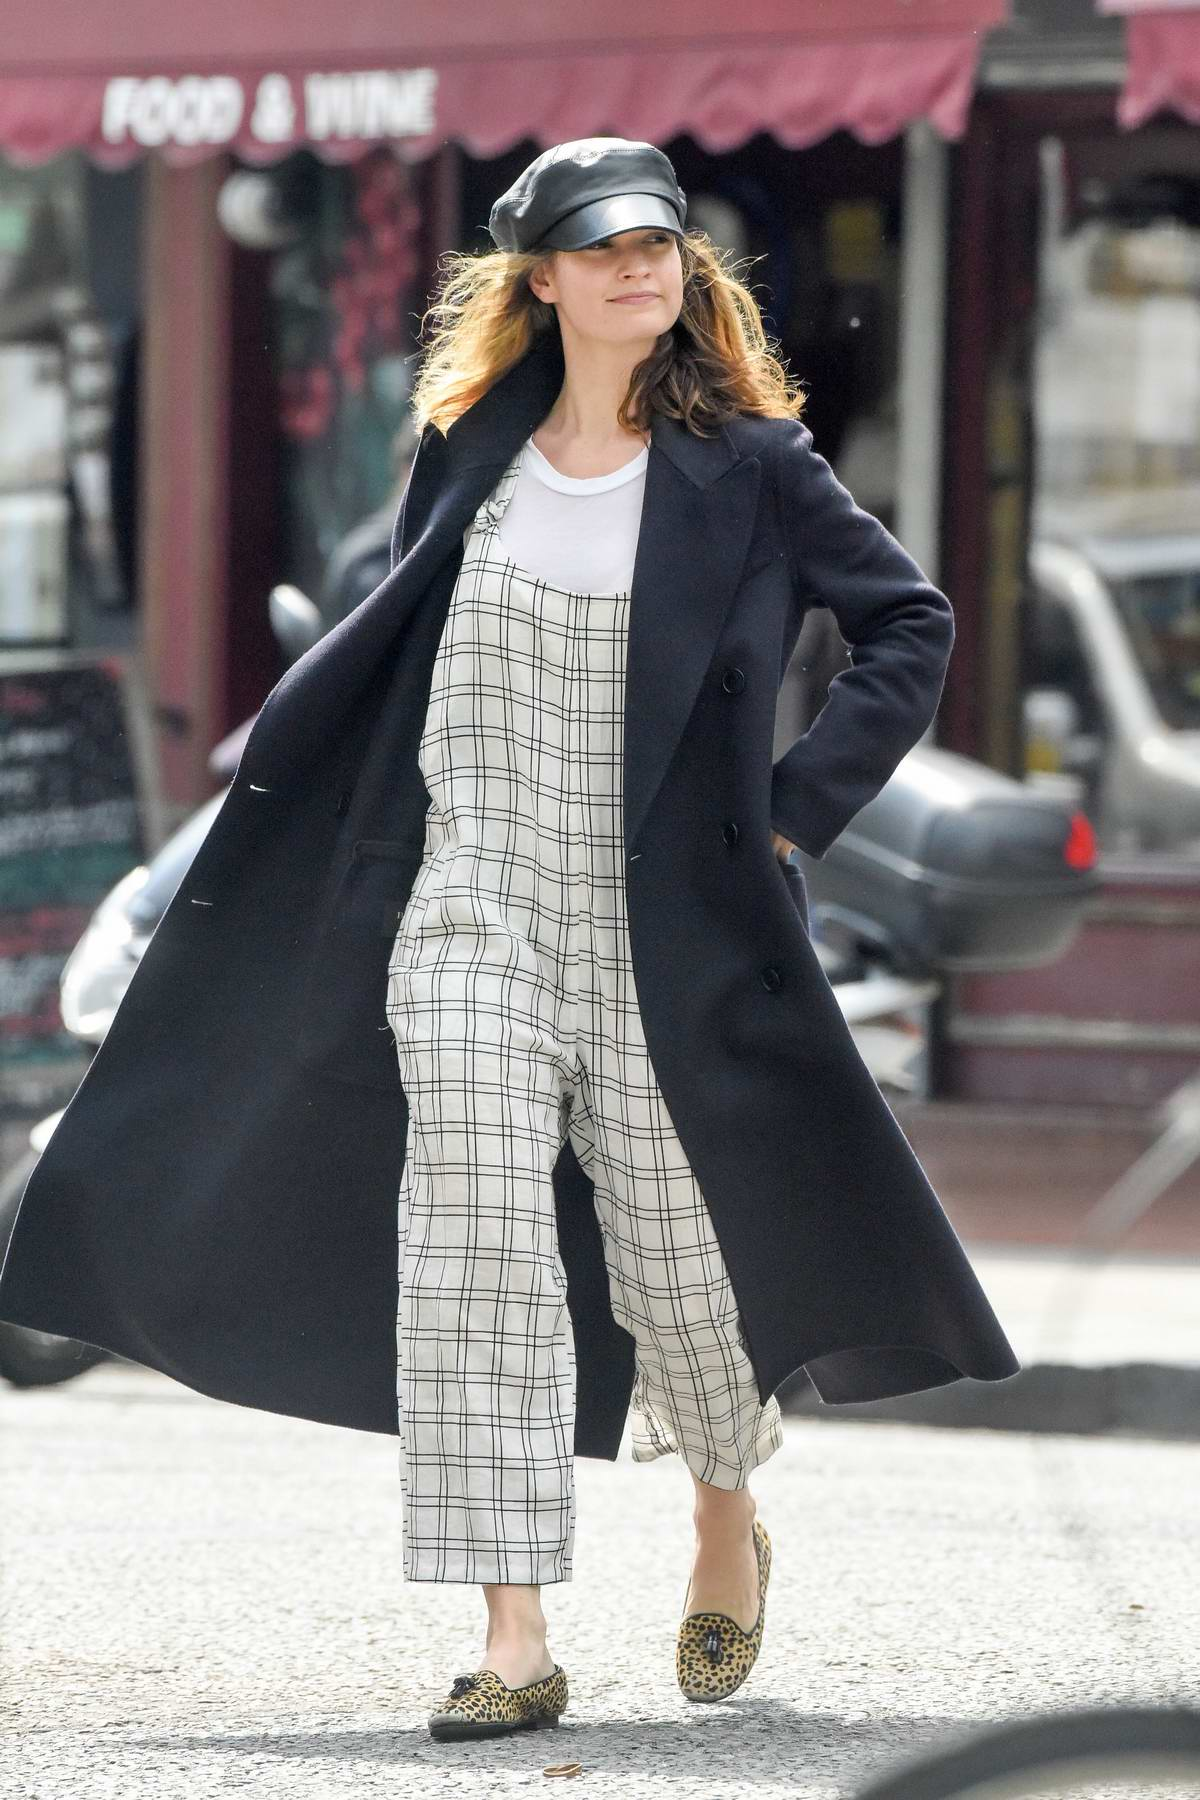 Lily James wears an overall and a long coat while out running errands in London, UK